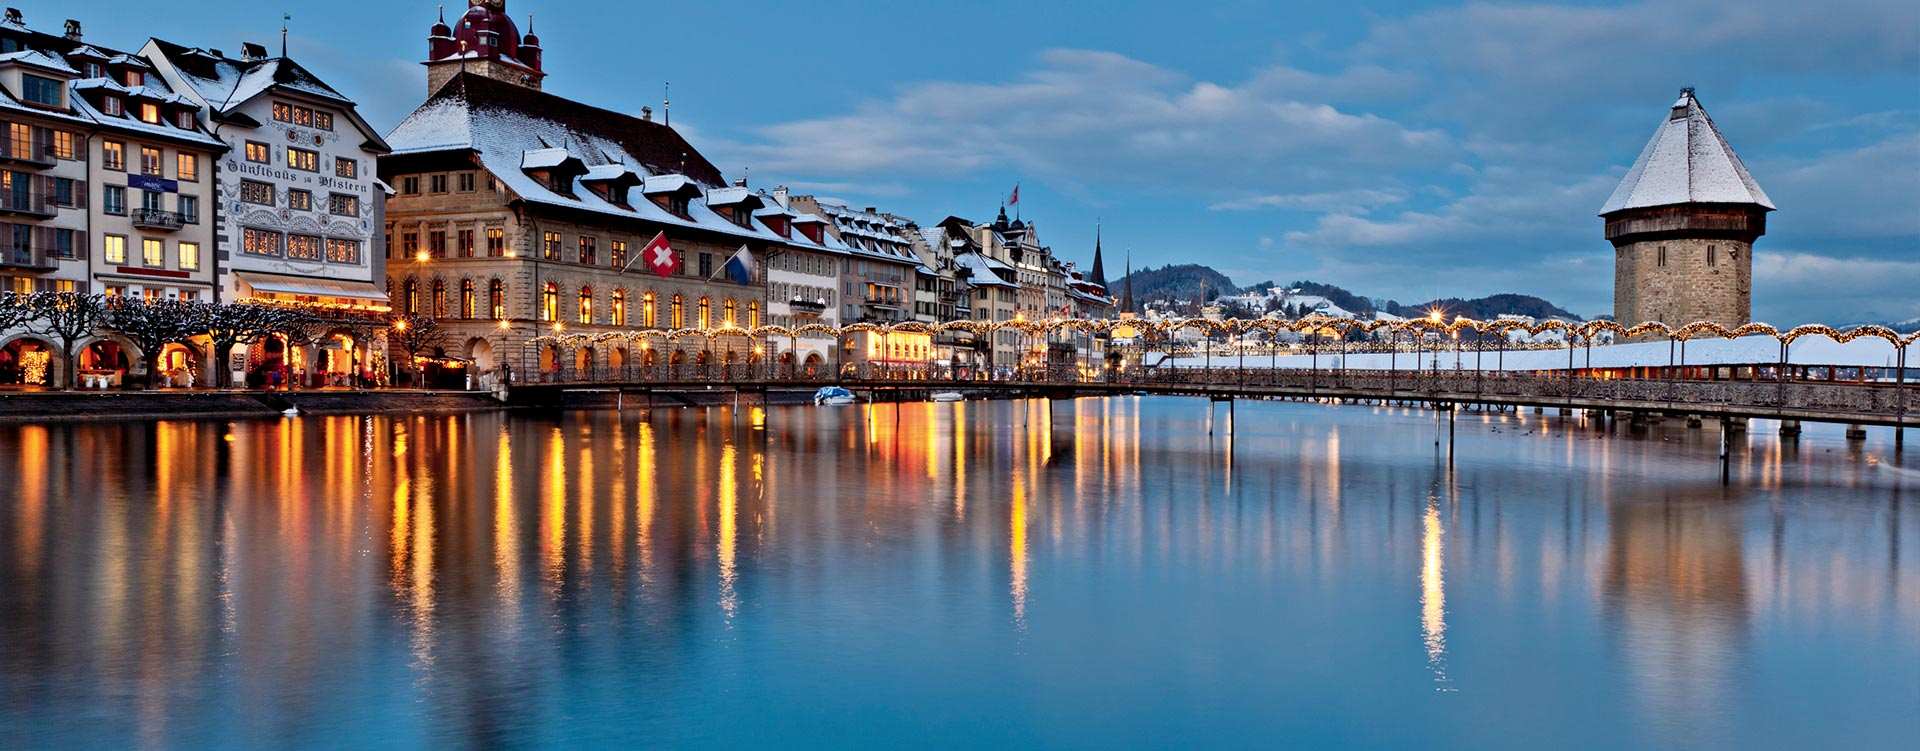 Deals on first class tickets to Lucerne lead to expansive rail passes and fun day trips. - IFlyFirstClass